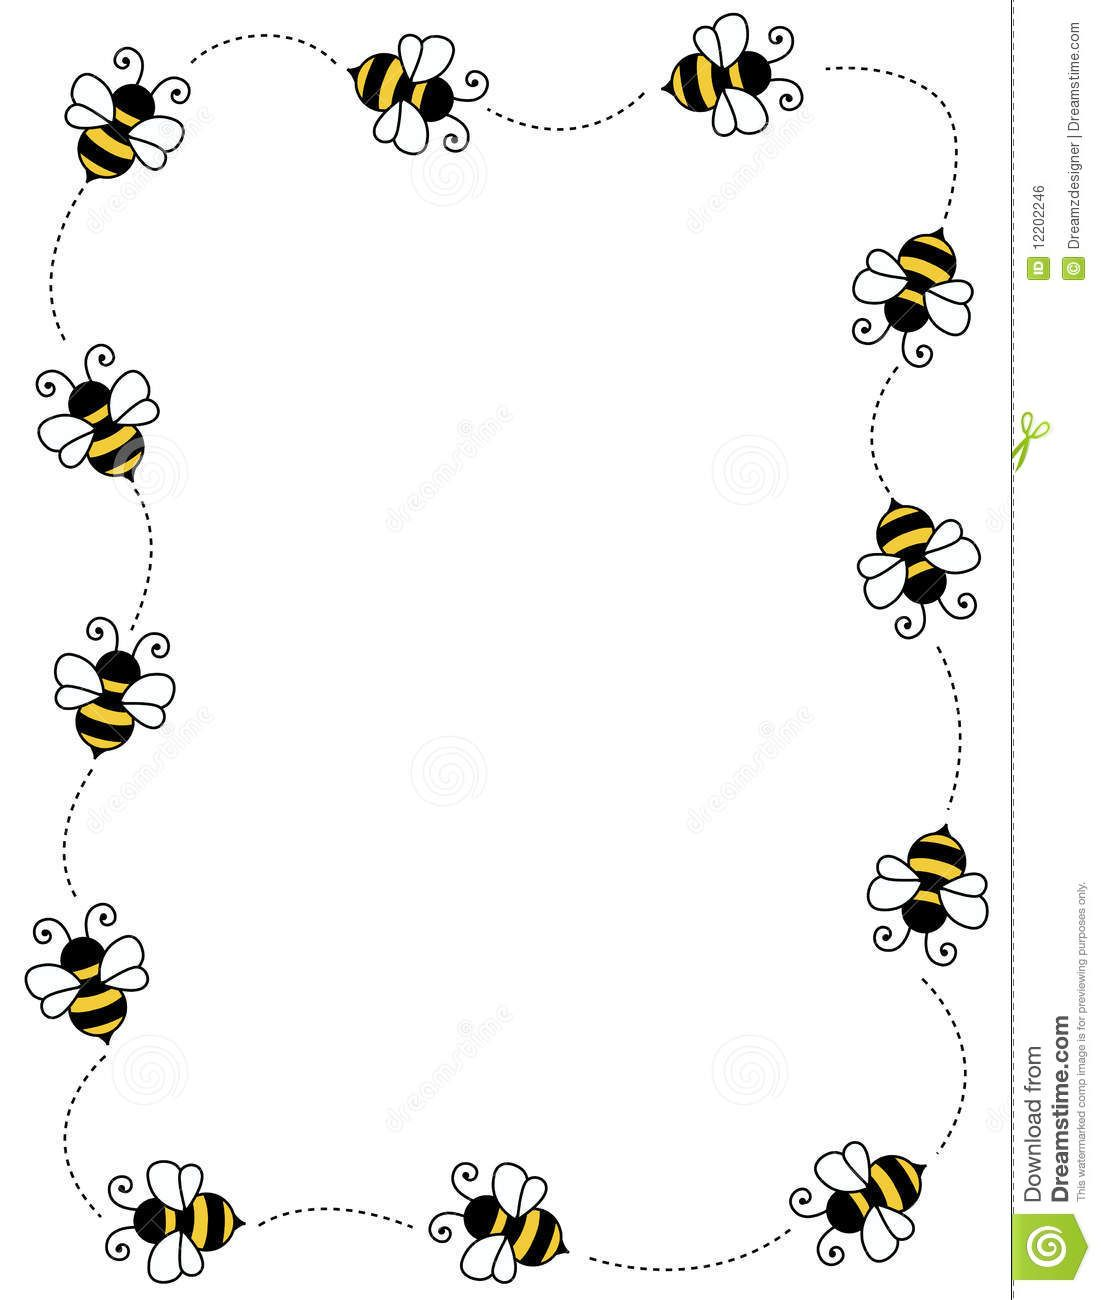 Bumble bee border clipart svg library stock clip art frames with bumble bees | ... on white background page ... svg library stock